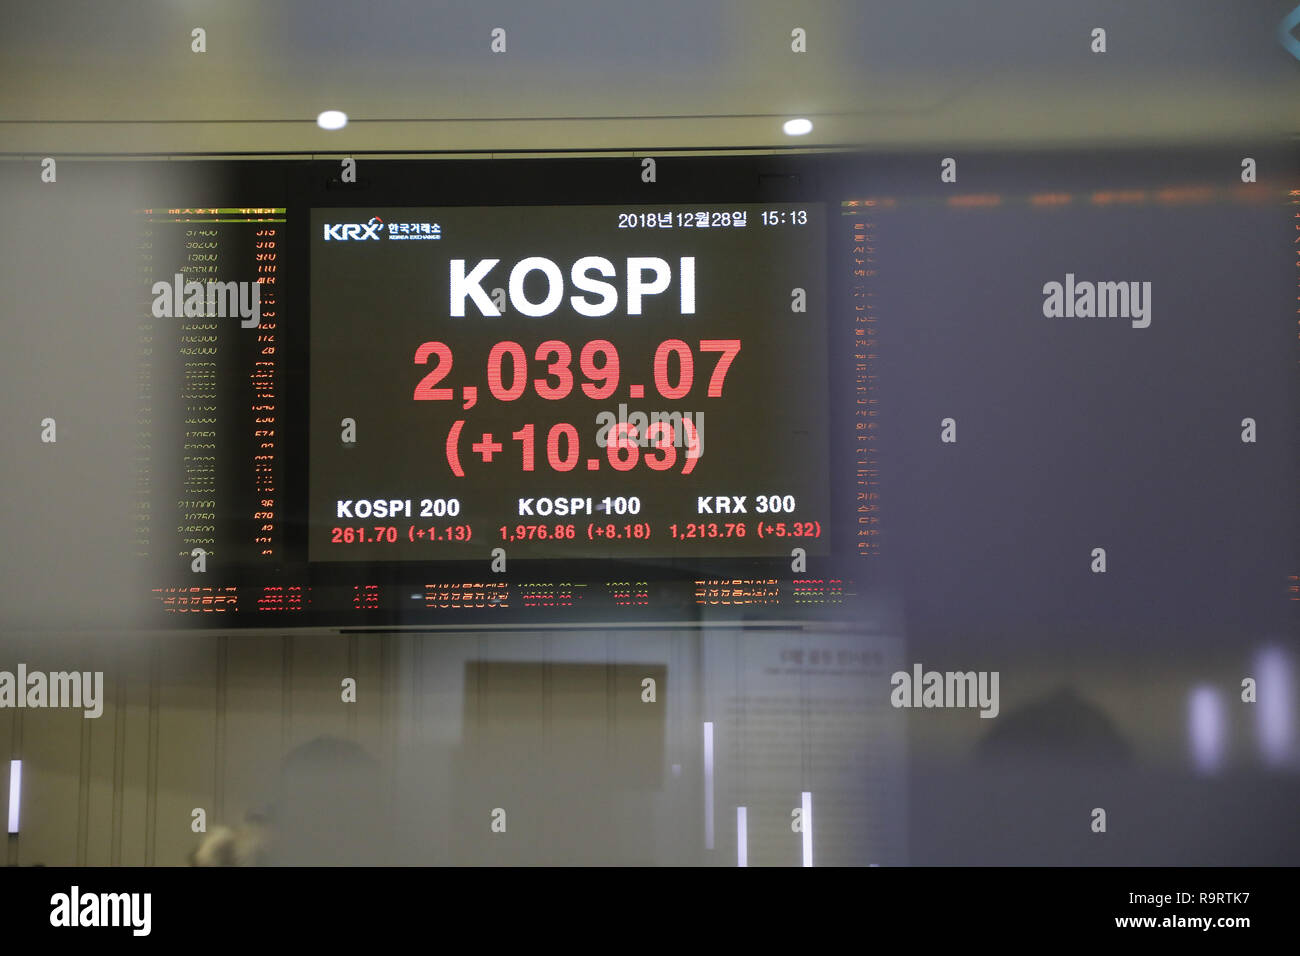 Asian Stock Markets Live Update Seoul South Korea South Korea 28th Dec 2018 Dec 28